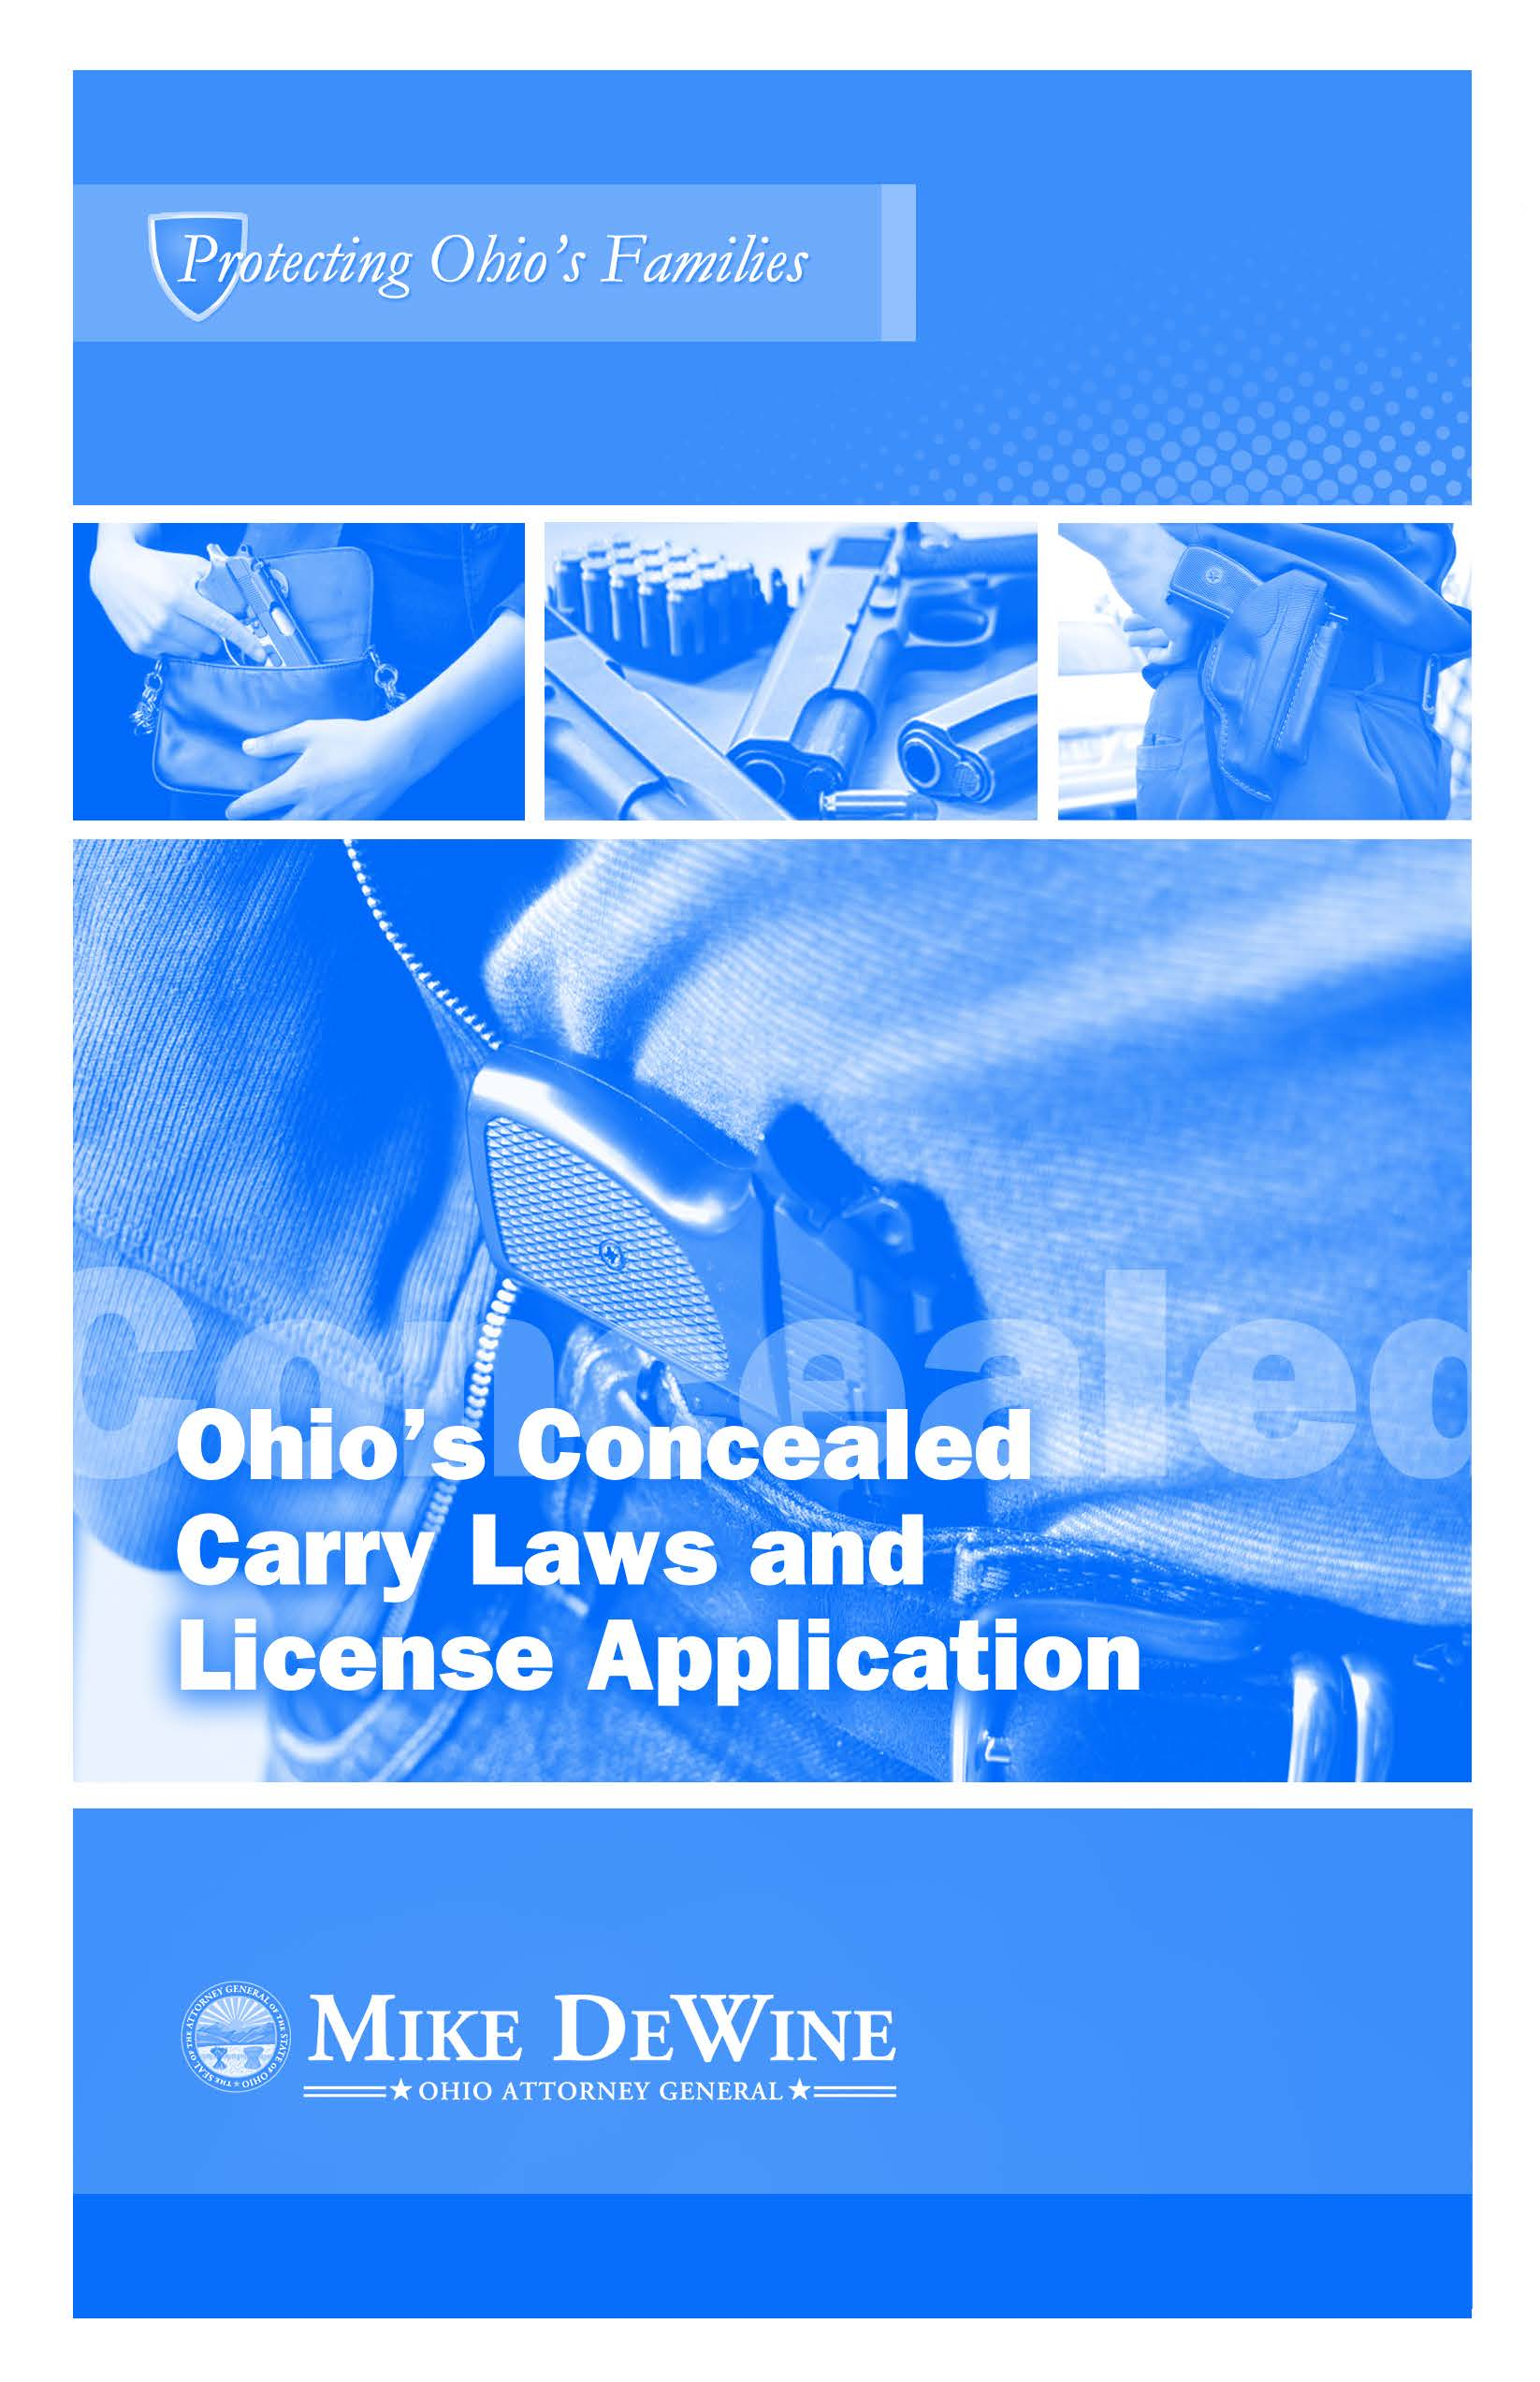 CCW Booklet Application WEB